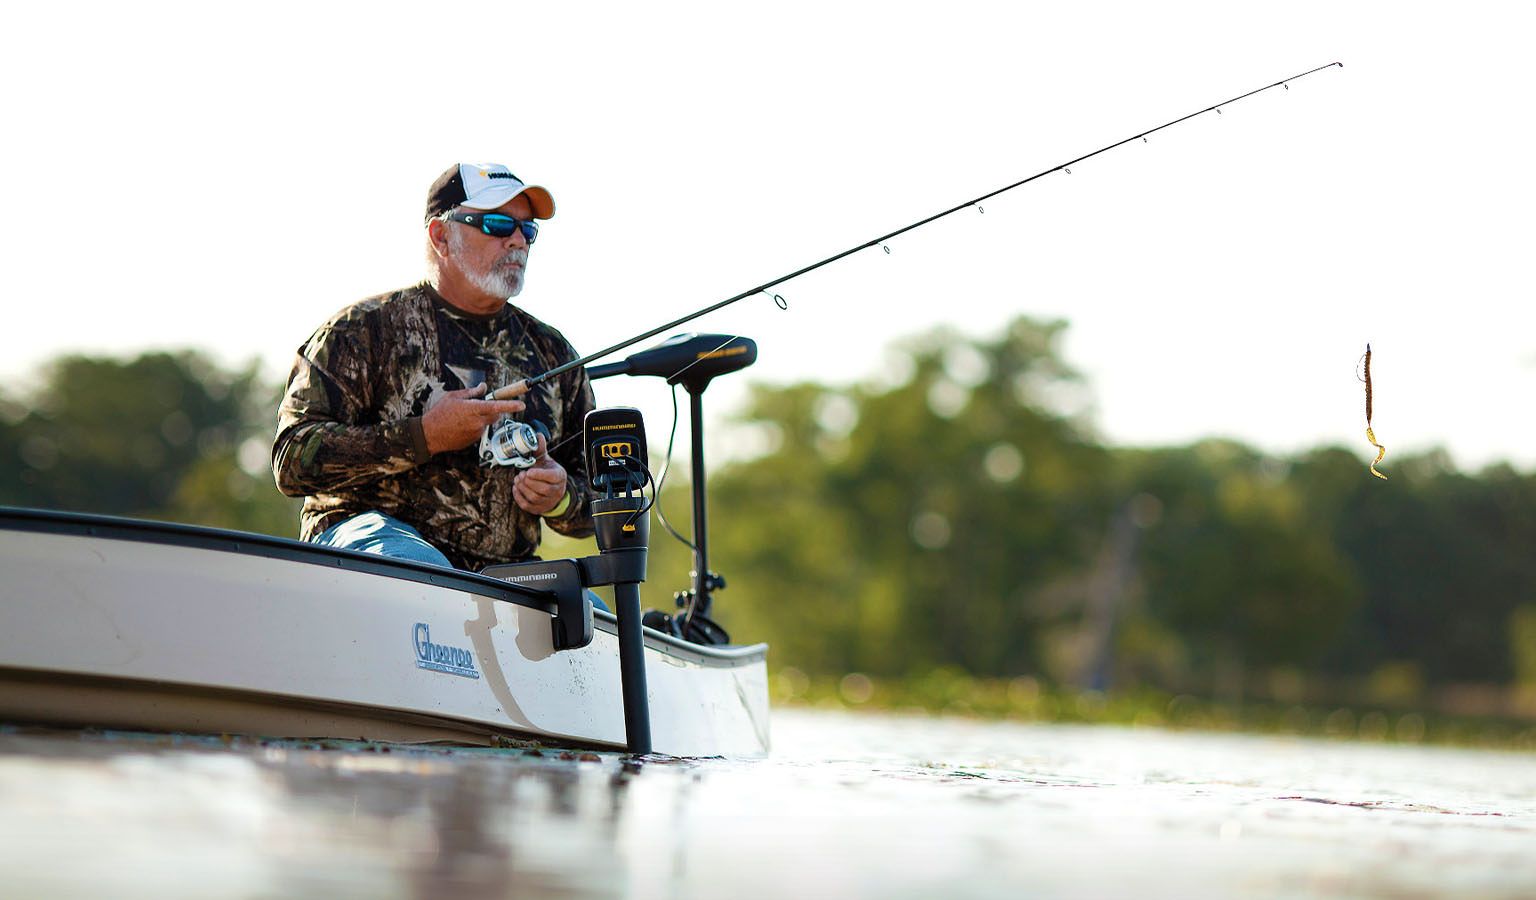 Save up to 25% on trolling motors & accessories